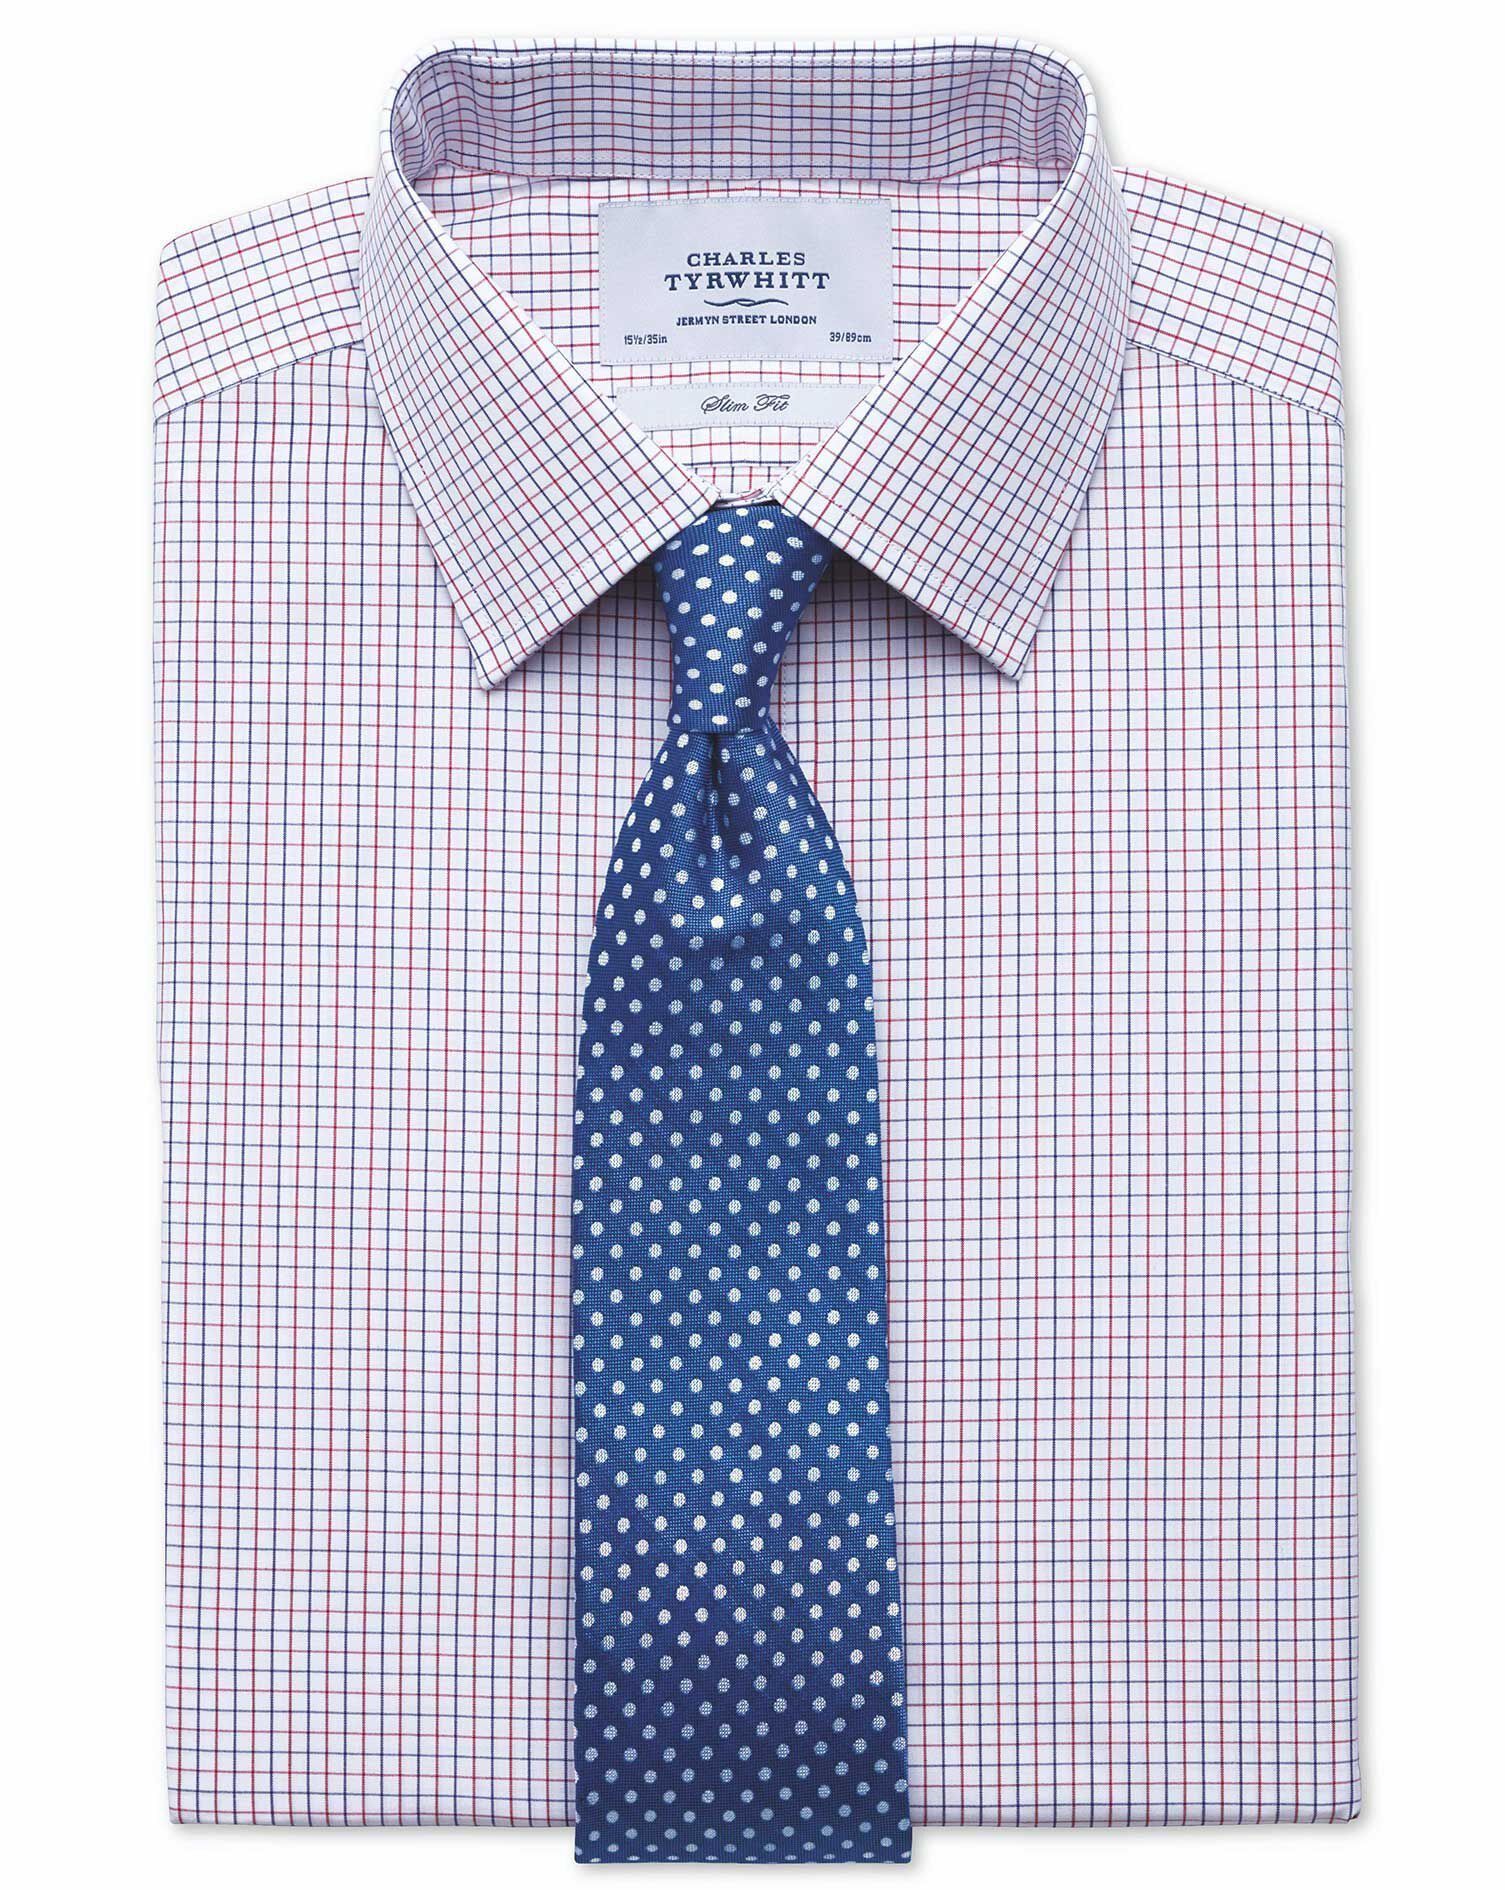 Slim Fit Two Colour Check Red & Blue Cotton Formal Shirt Single Cuff Size 16/36 by Charles Tyrwhitt